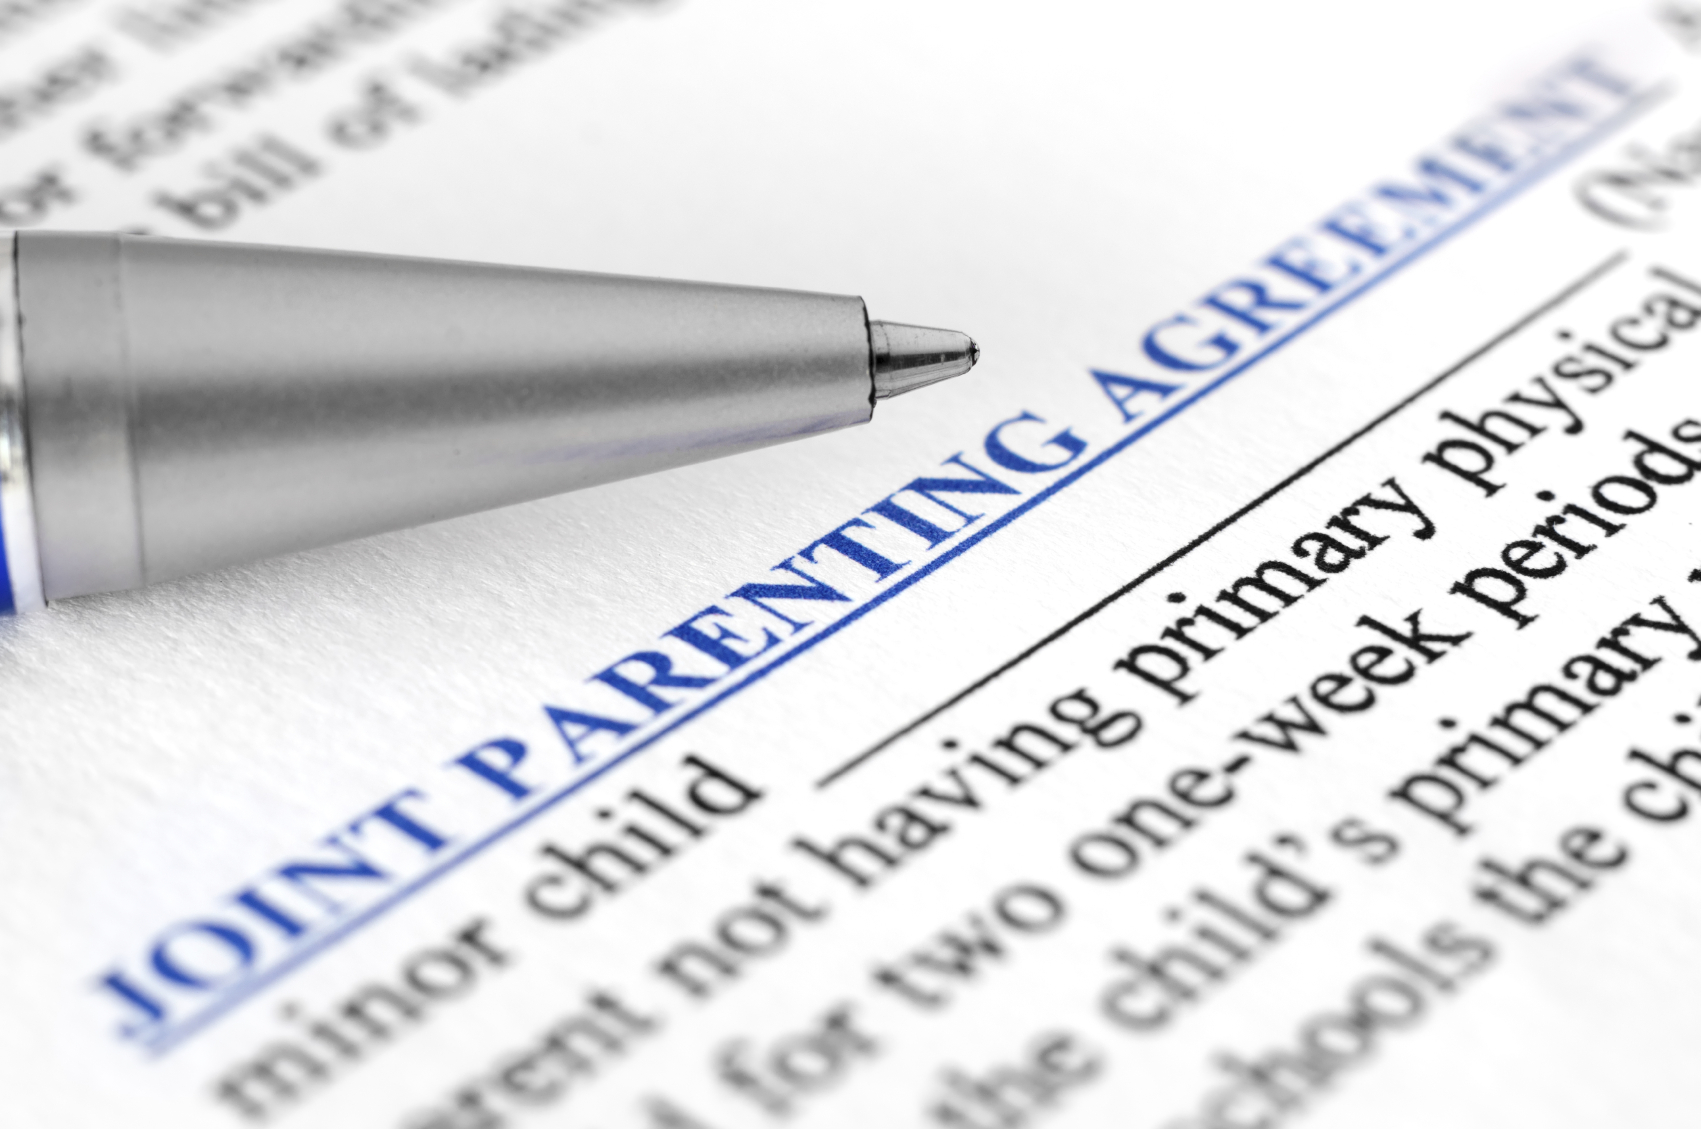 co-parenting agreement